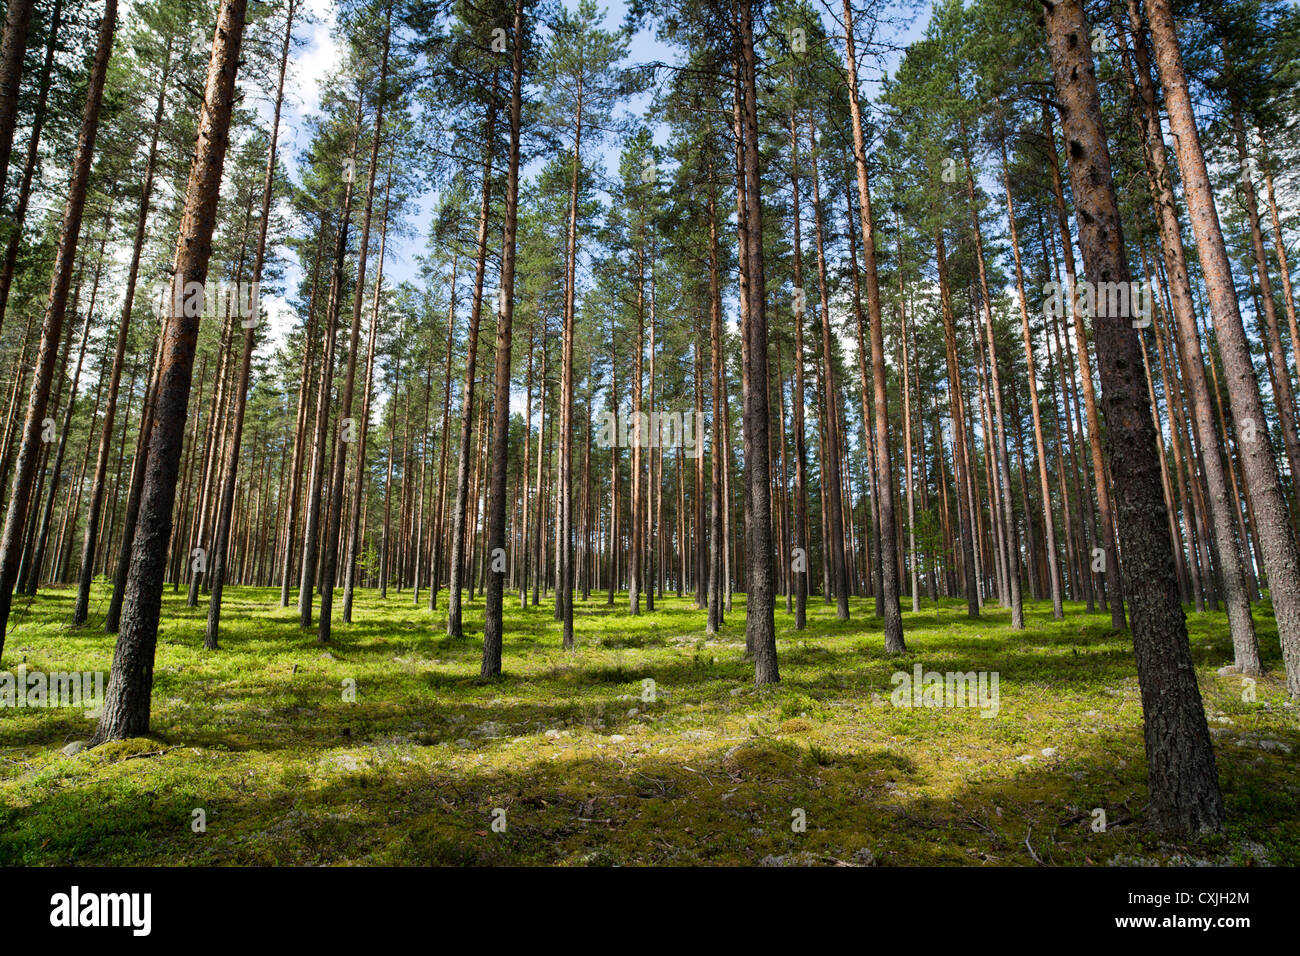 Boreal pine ( pinus sylvestris ) forest growing on dry heathland at glacial esker , Finland - Stock Image